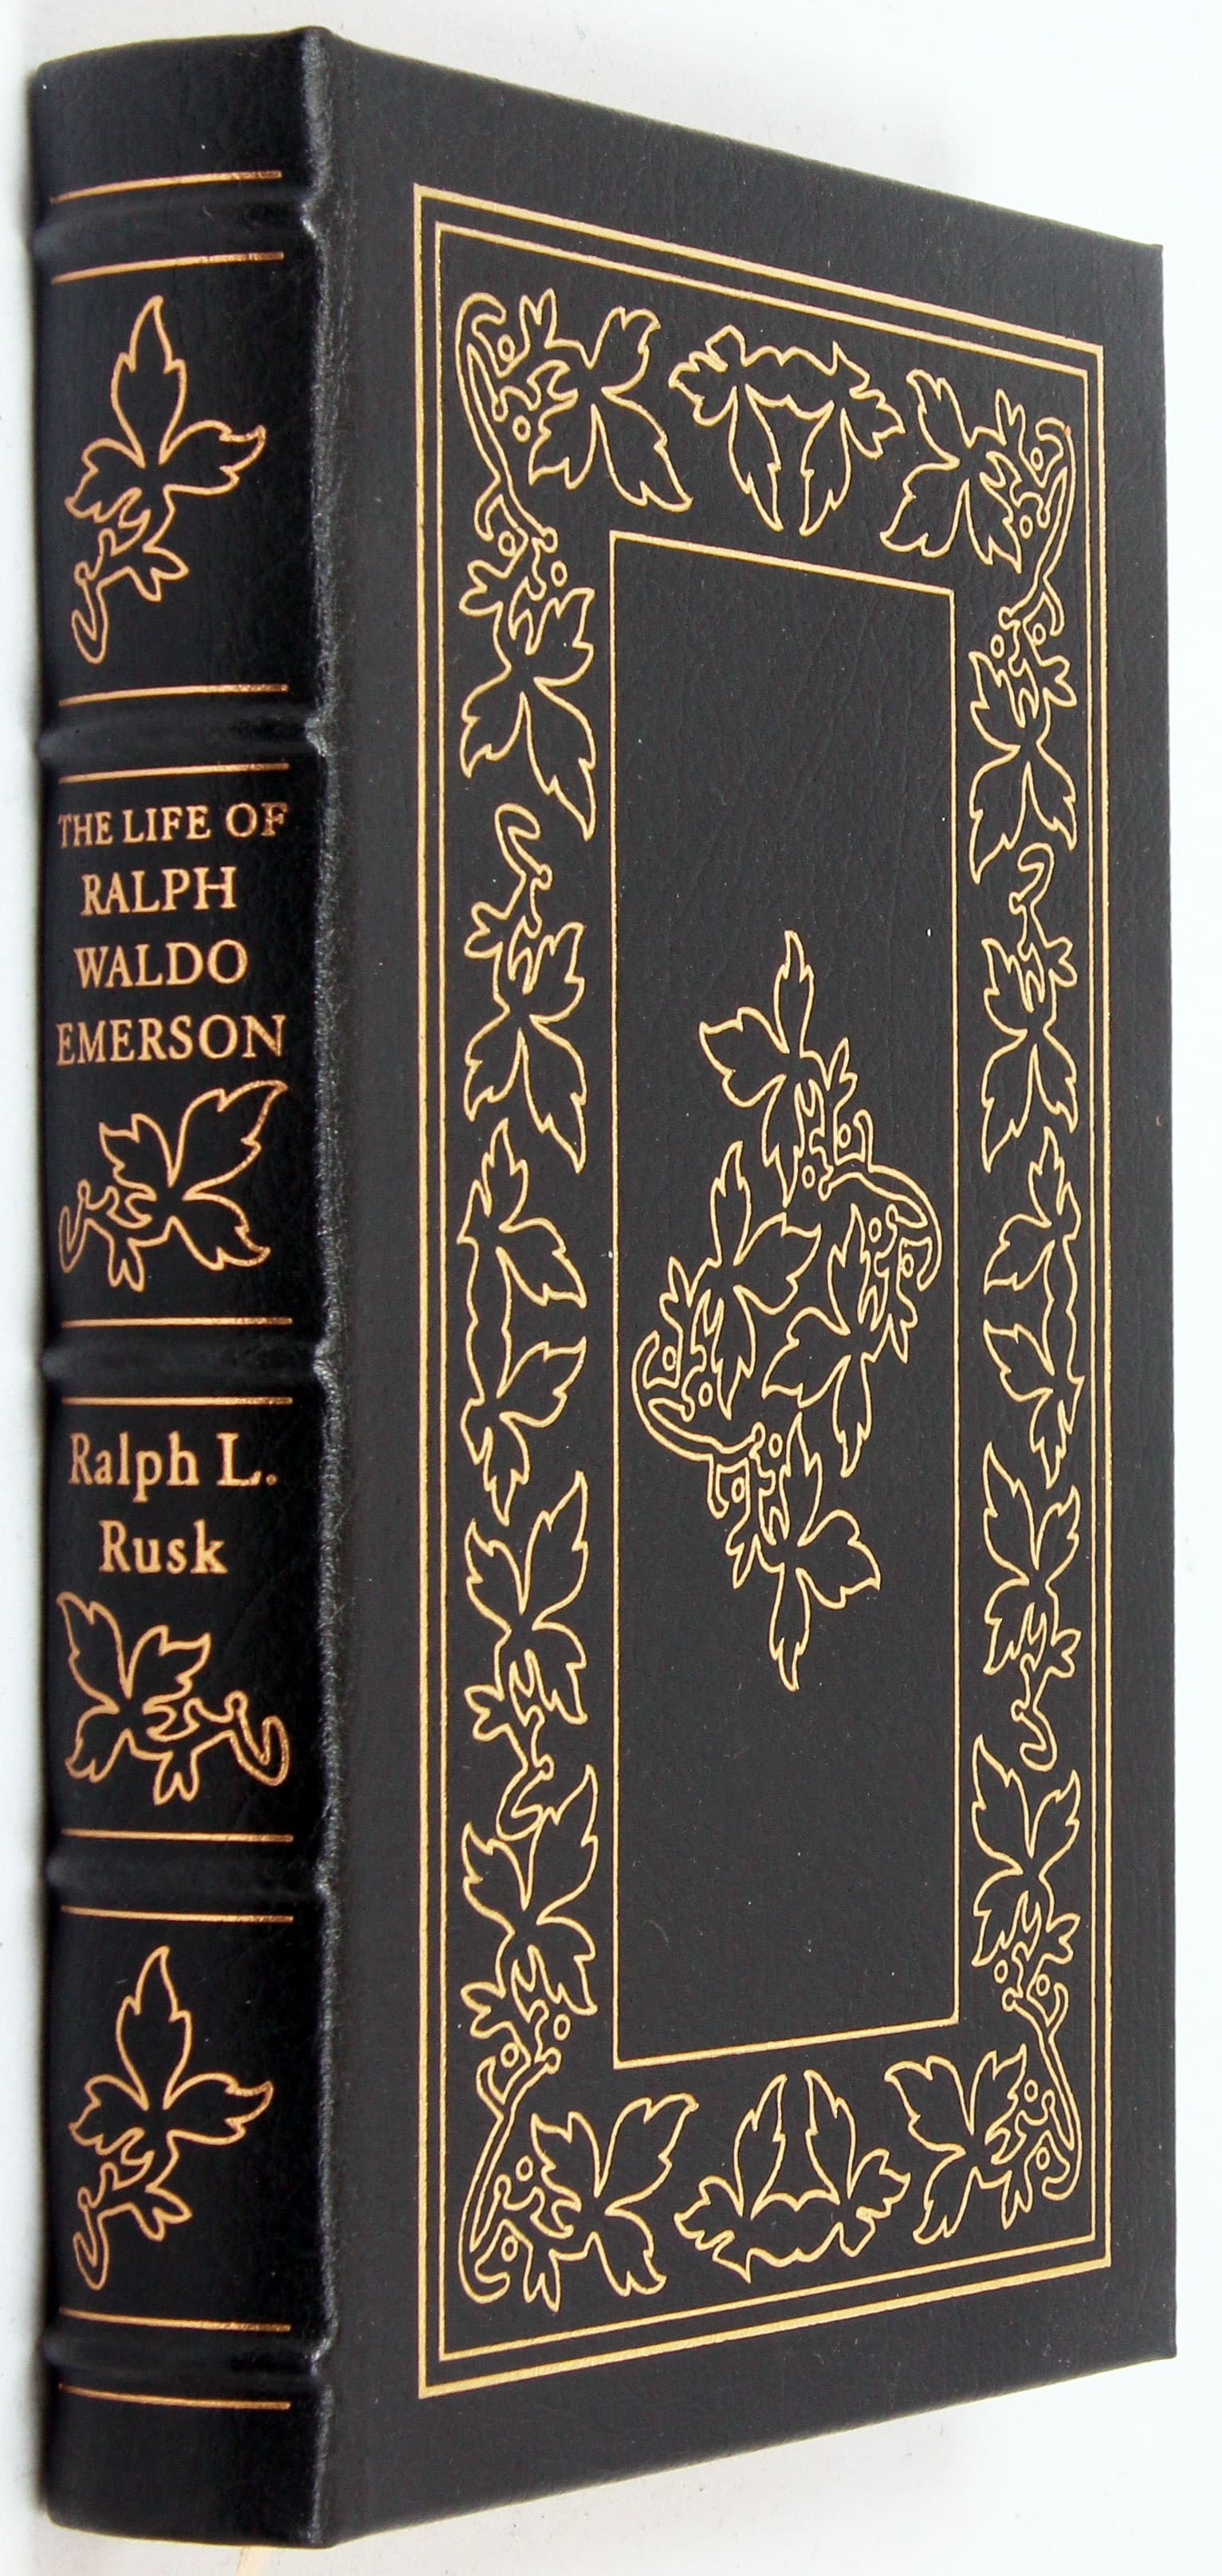 the essays of ralph waldo emerson easton press The essays of ralph waldo emerson the first and second series in one volume easton press the 100 greatest books ever written robert louis stevenson.